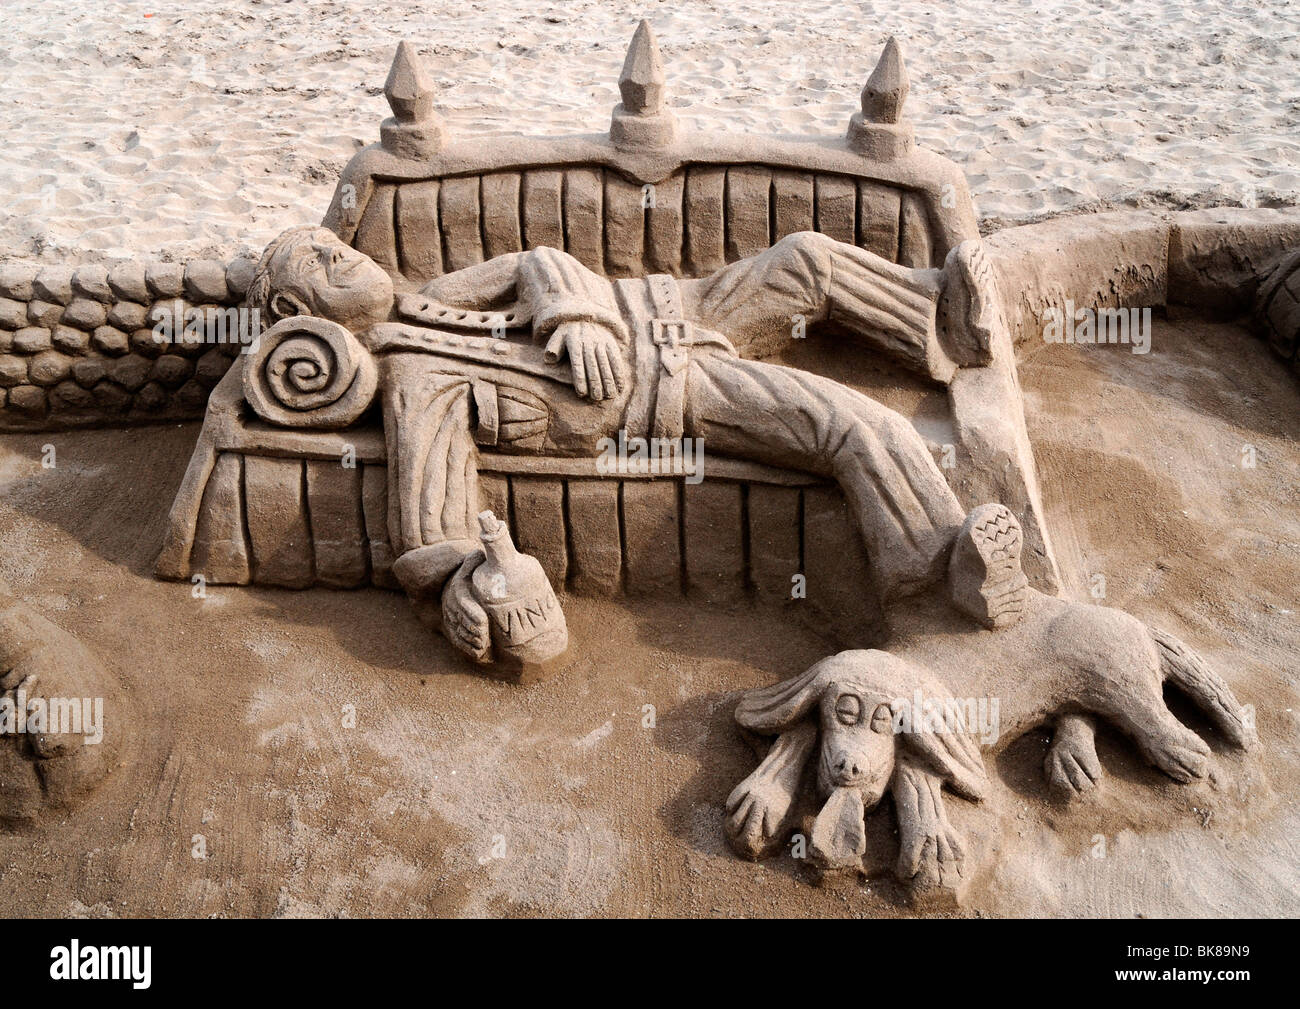 Sand sculpture of a tramp with a dog lying on a bench - Stock Image